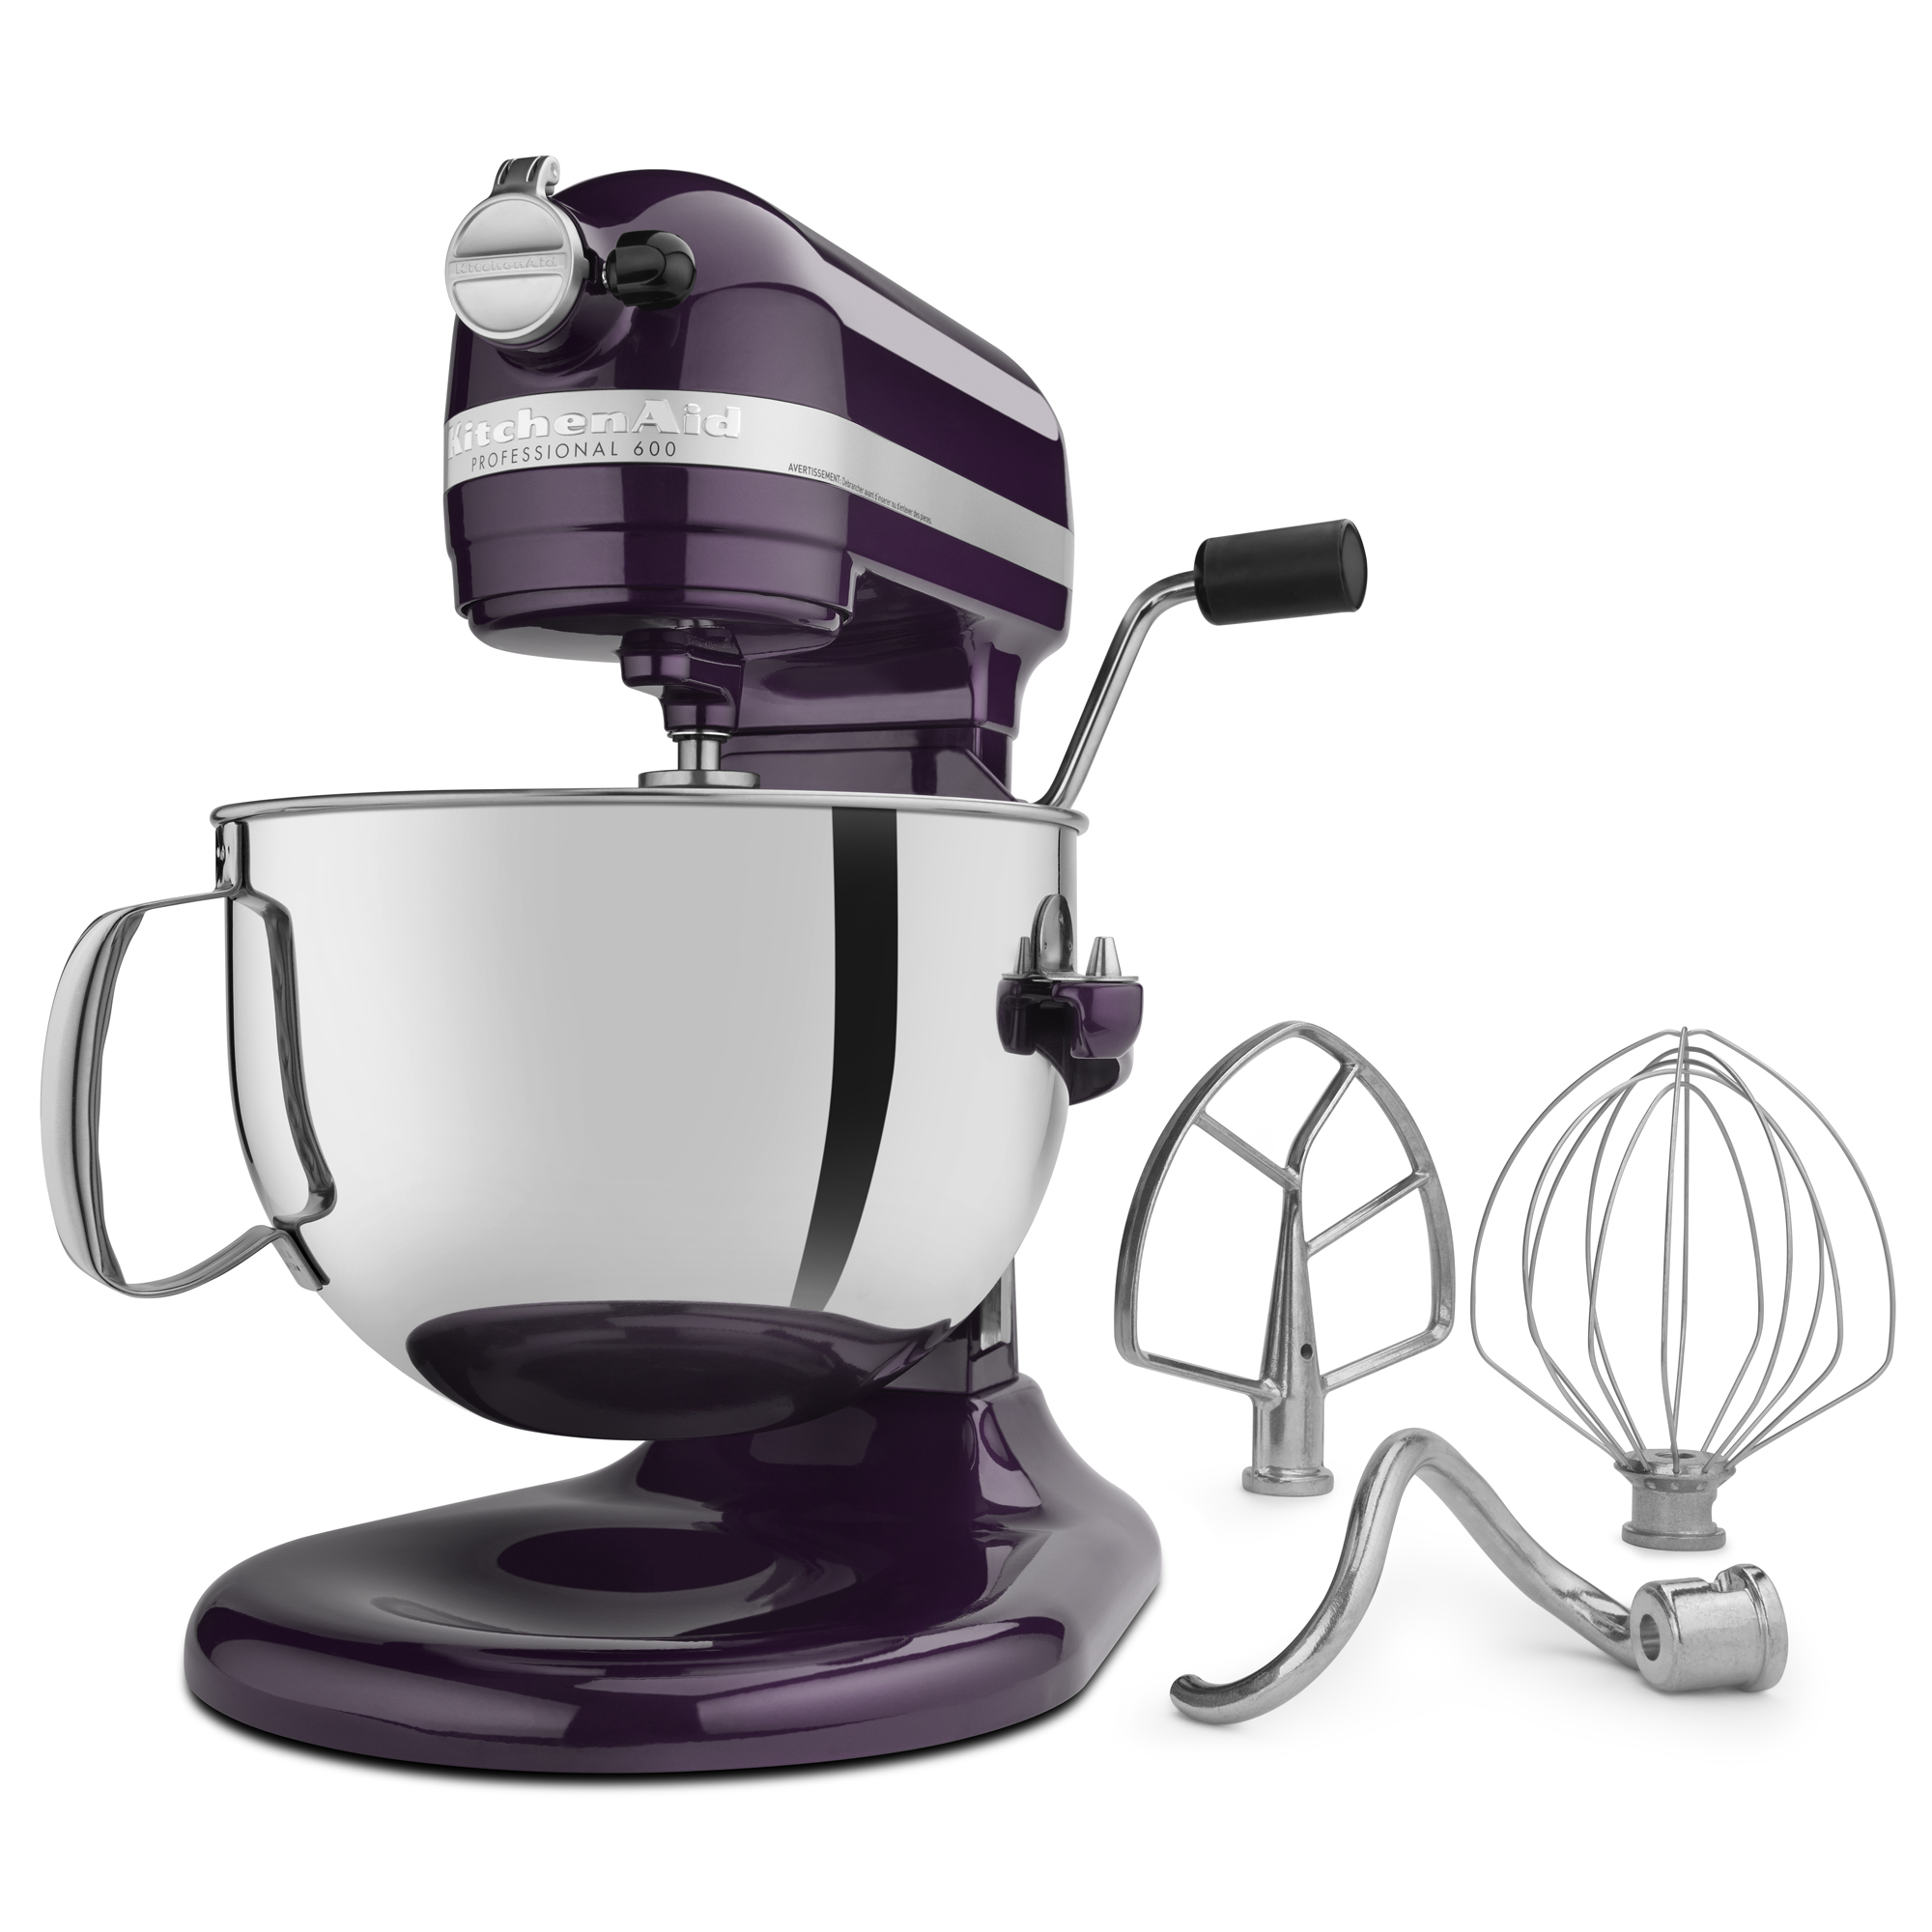 KitchenAid-Refurbished-Pro-600-Series-6-Quart-Bowl-Lift-Stand-Mixer-RKP26M1X thumbnail 35